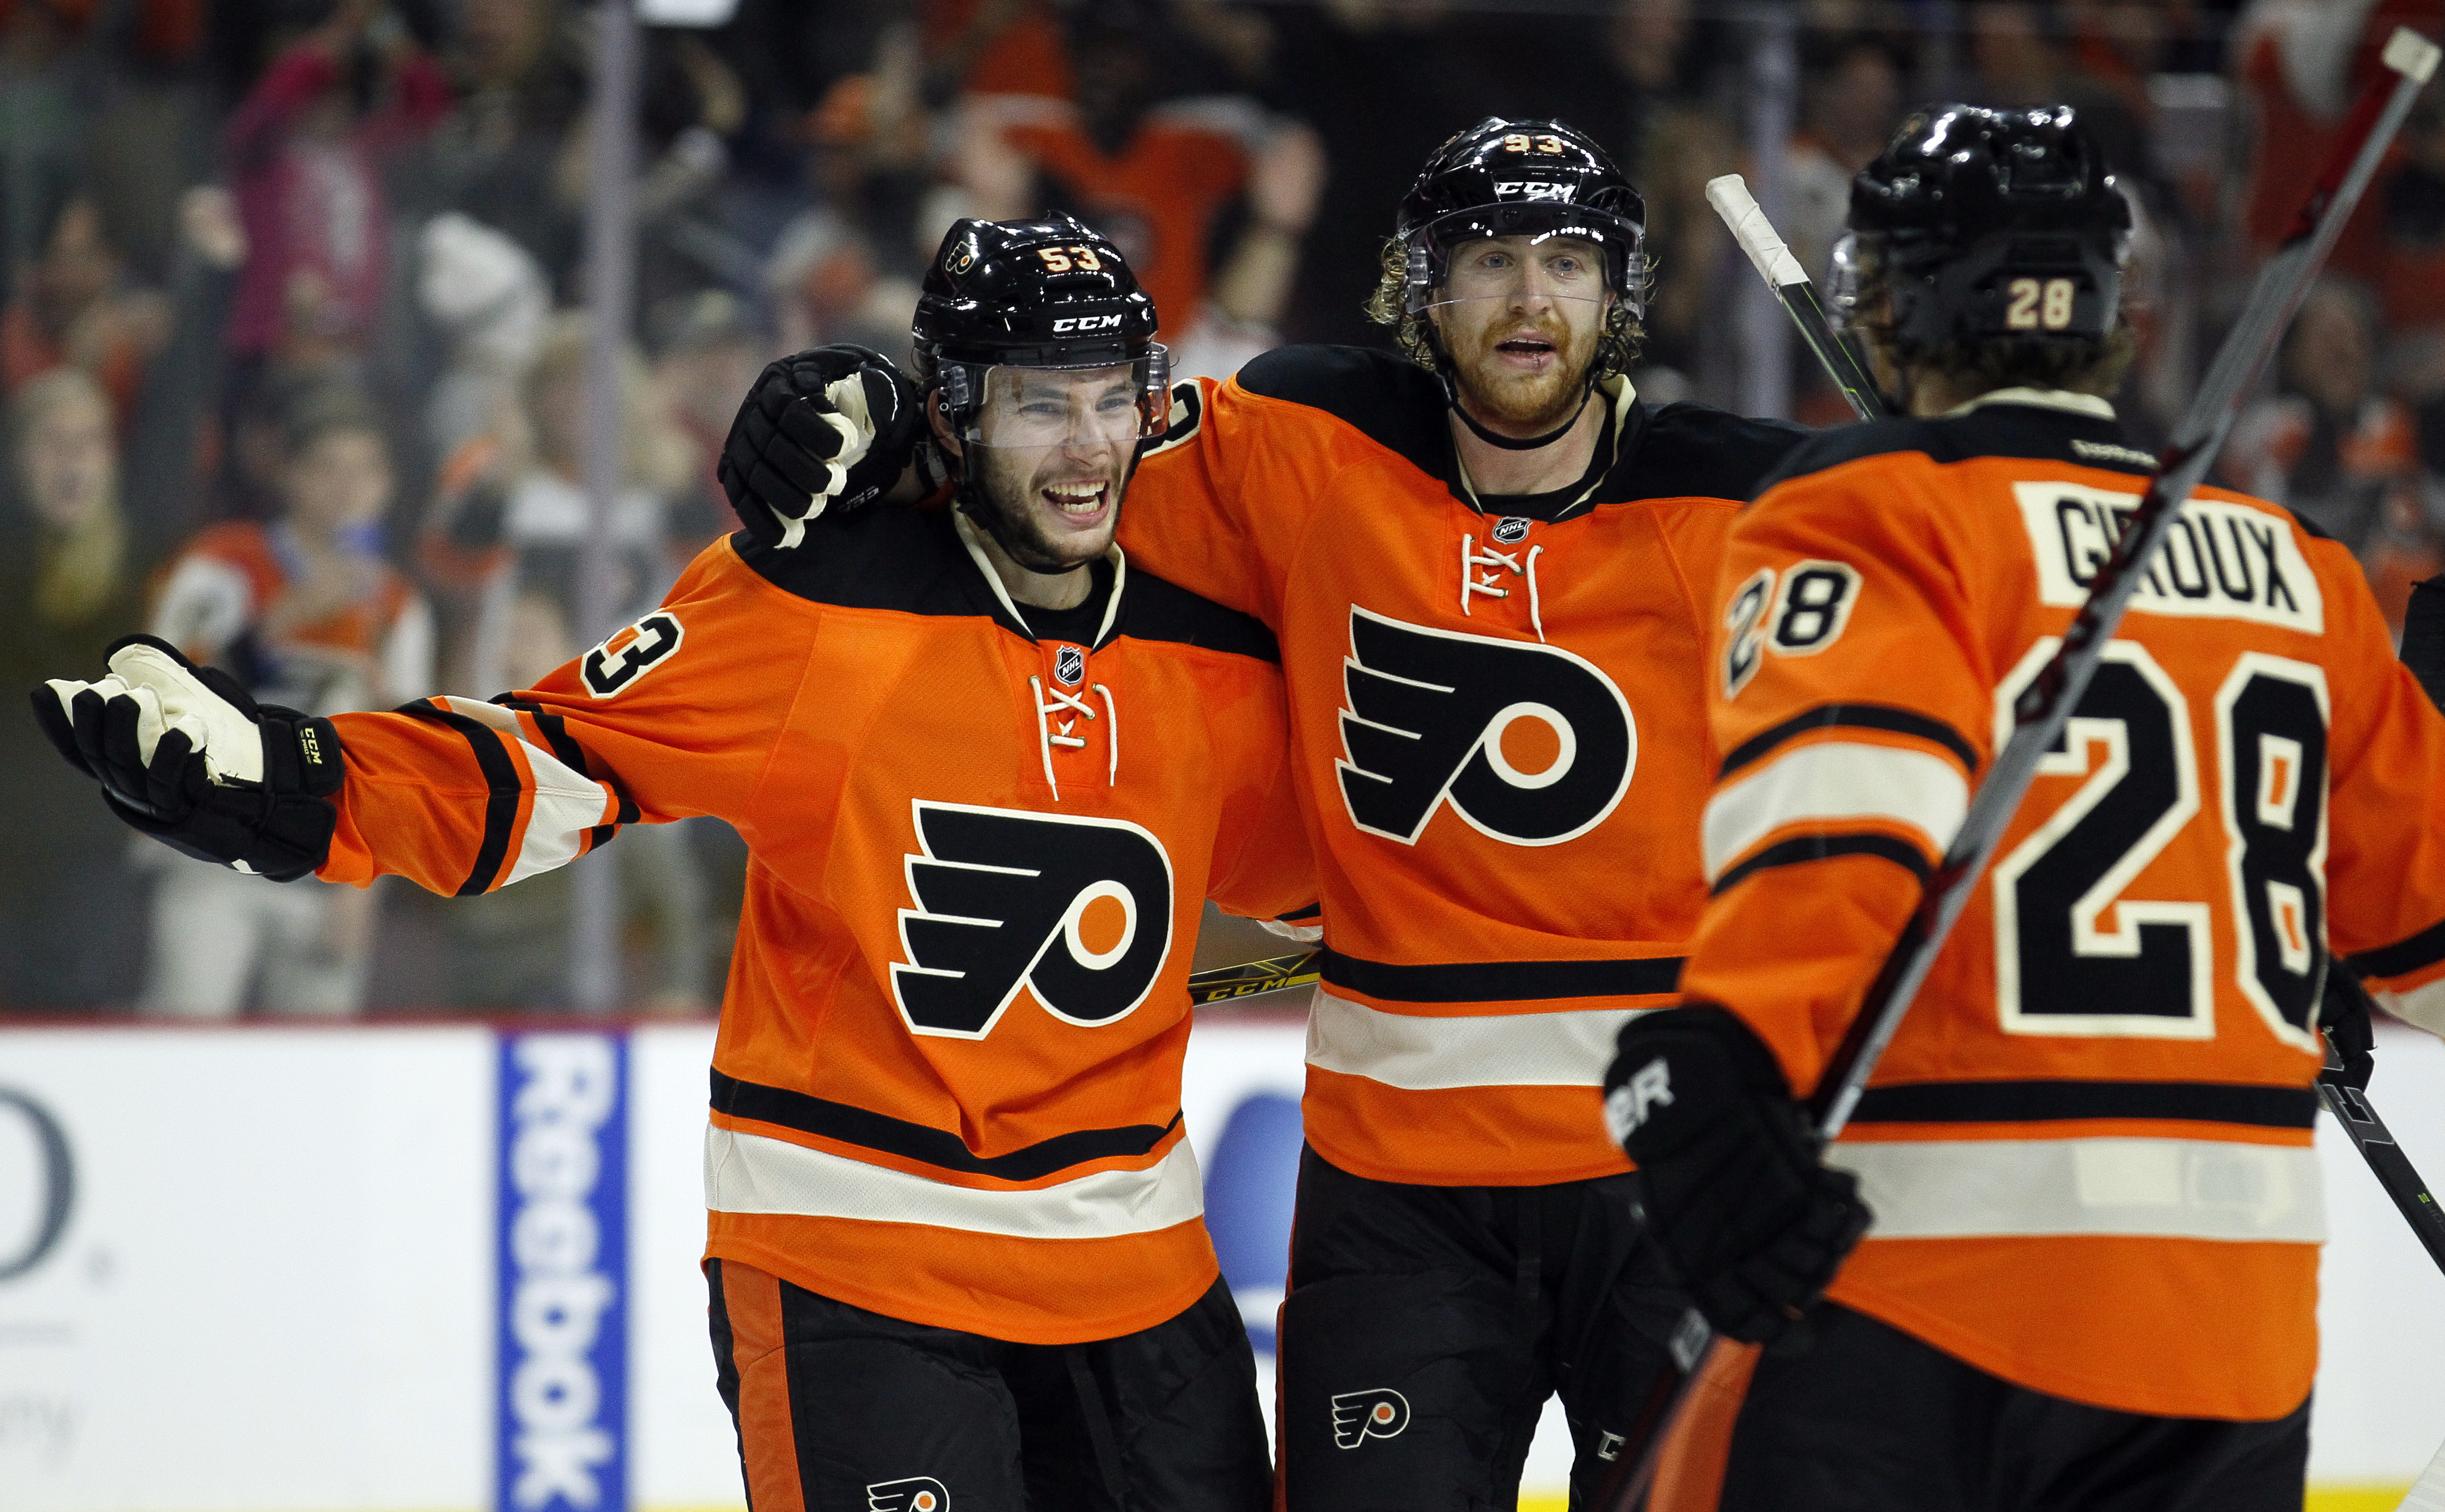 Philadelphia Flyers' Shayne Gostisbehere, left, who scored the winning goal, and Jakub Voracek, center, begin celebrating as Claude Giroux joins them at the end of the overtime period of an NHL hockey game against the Nashville Predators, Friday, Nov. 27,